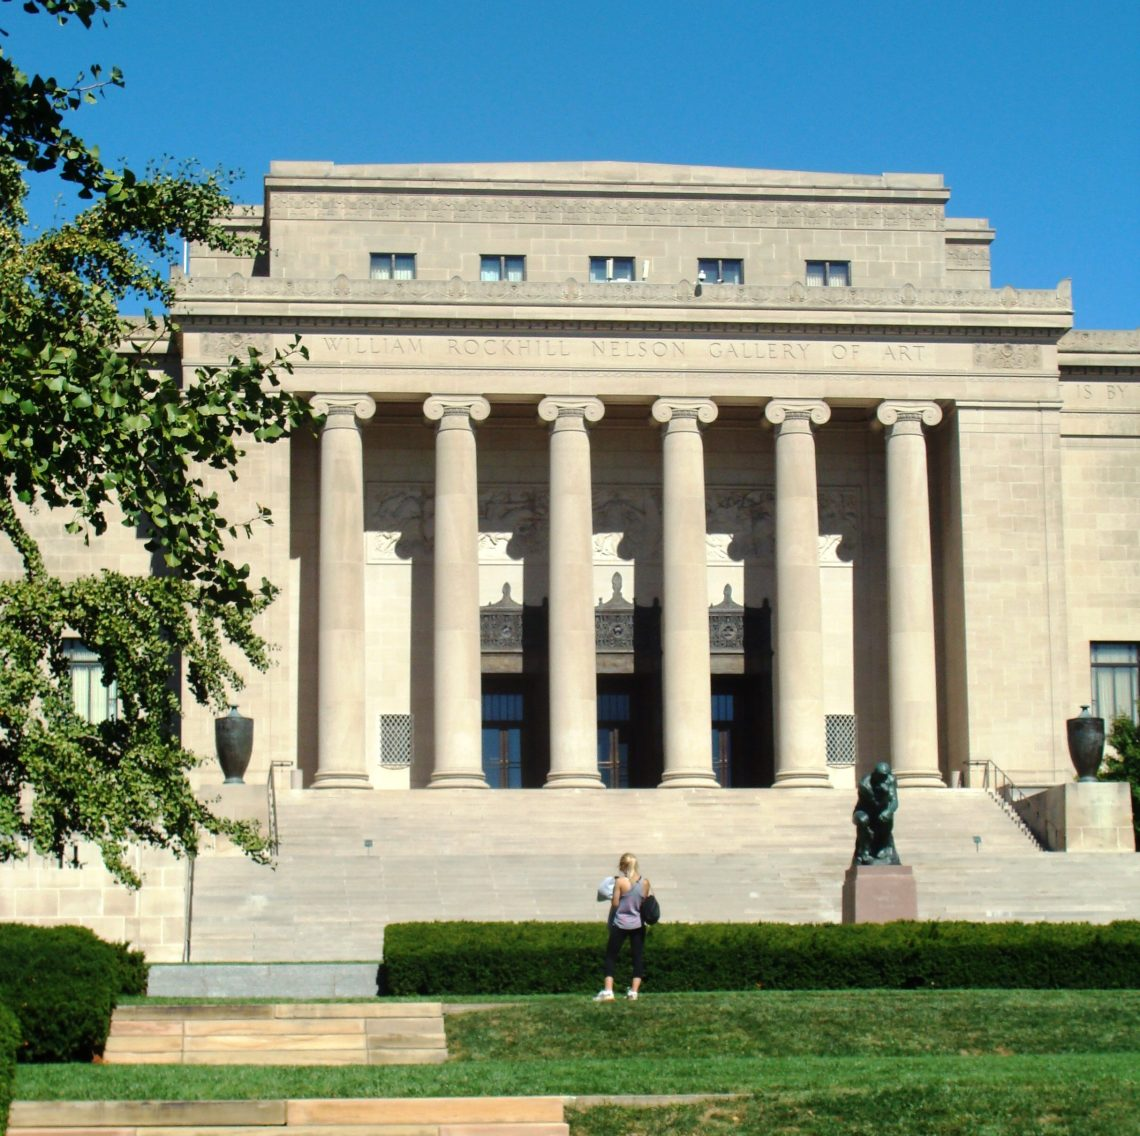 The Nelson-Atkins Museum of Art. Foto met dank aan Wikimedia Commons, Nightryder84, CC BY-SA 3.0